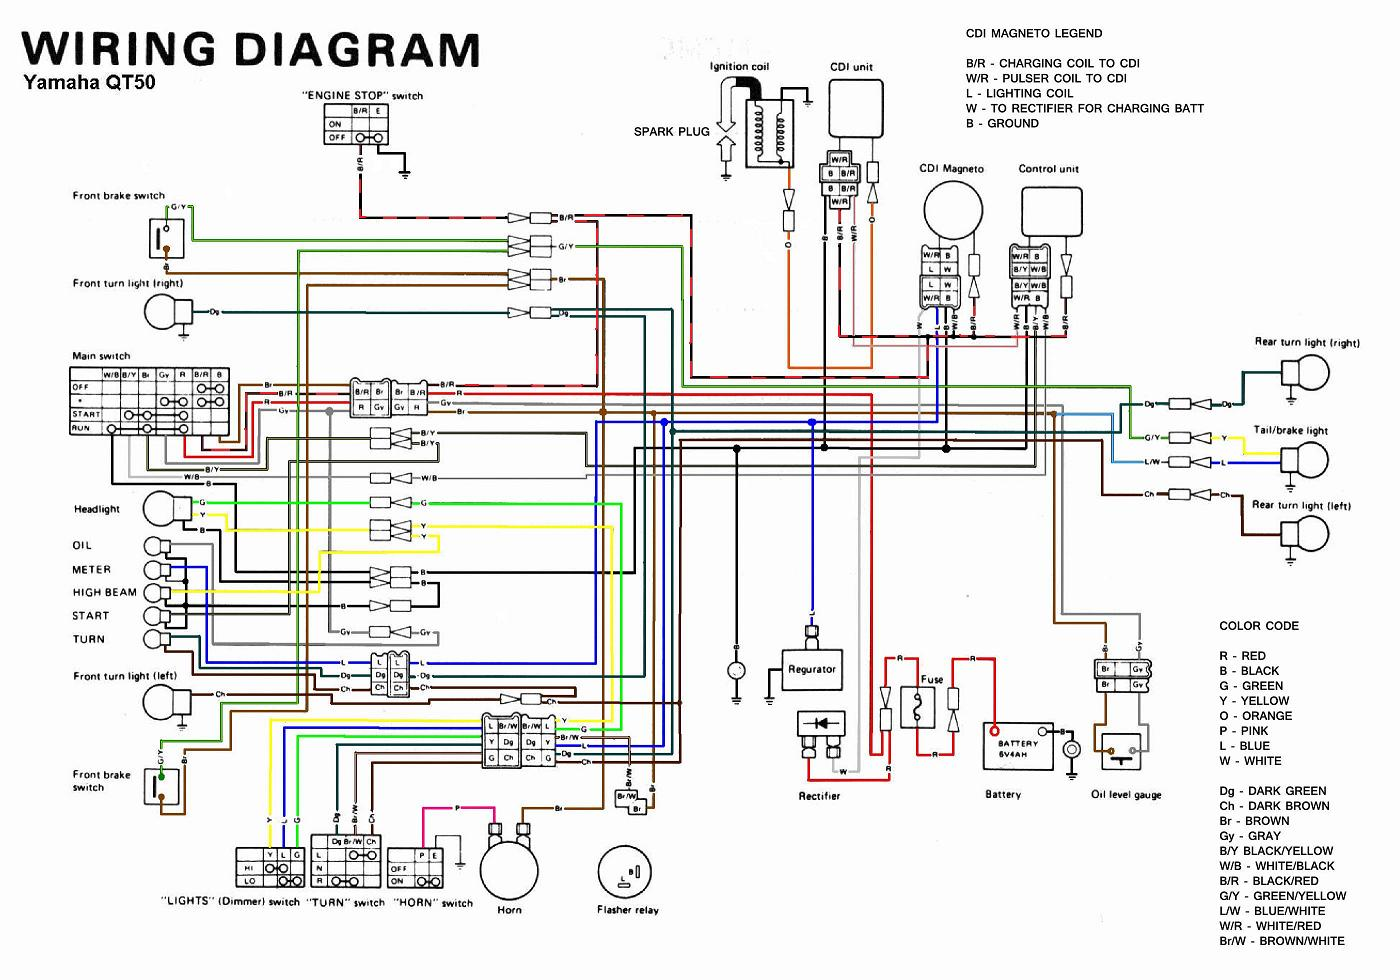 Yamaha QT50 Wiring Diagram suzuki fa50 wiring diagram suzuki fa50 oil \u2022 free wiring diagrams suzuki v100 wiring diagram at readyjetset.co